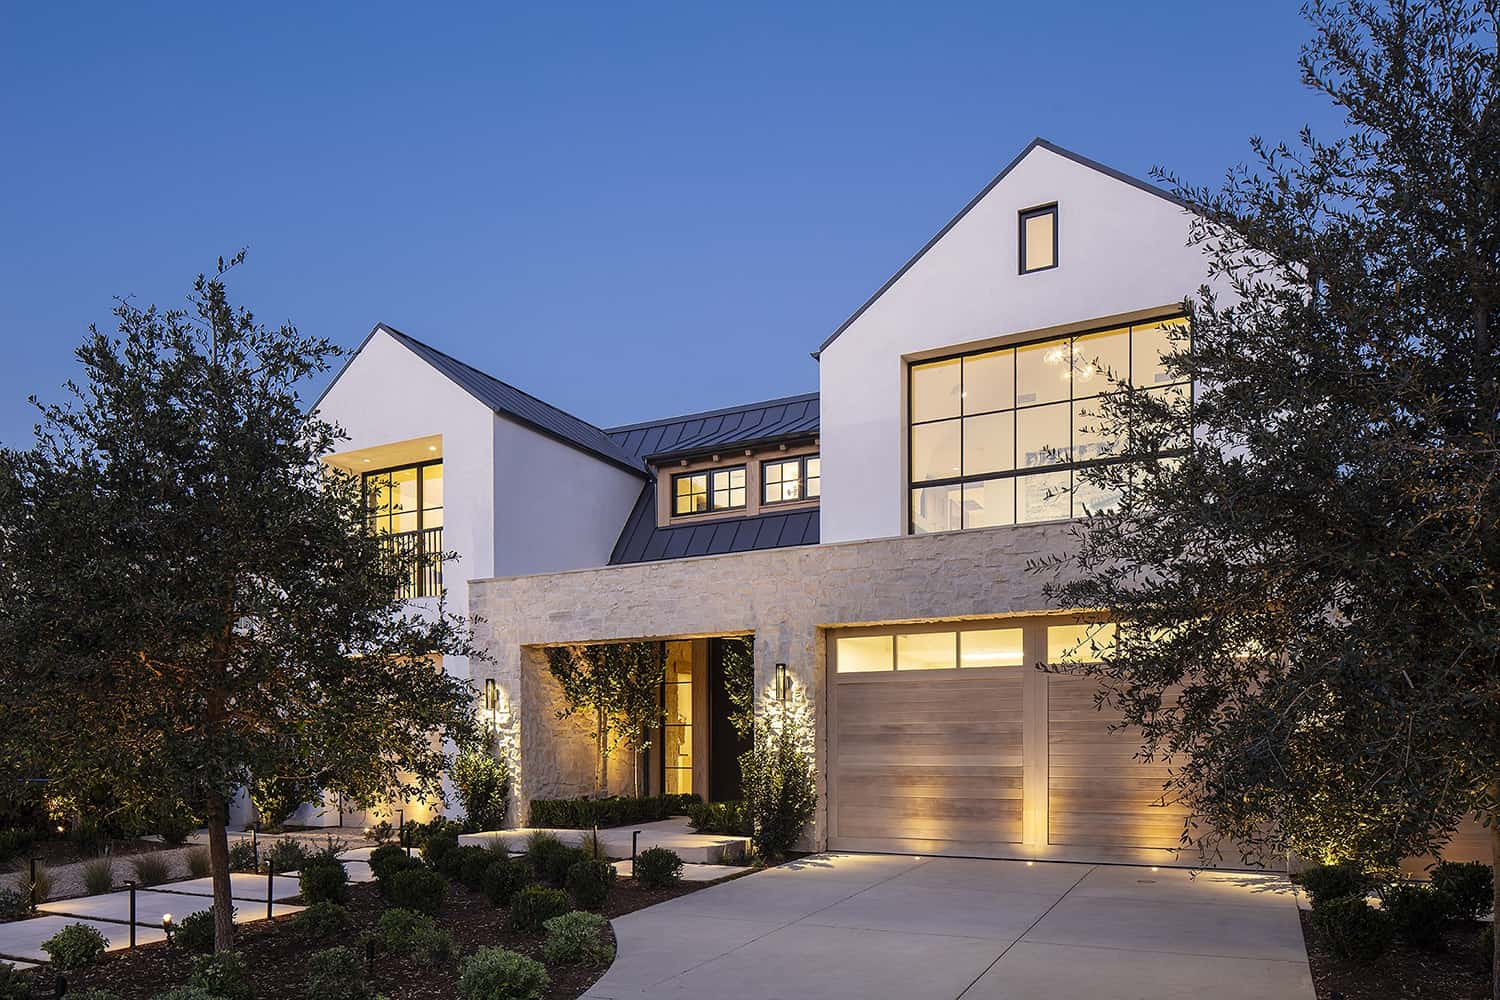 european-transitional-style-home-exterior